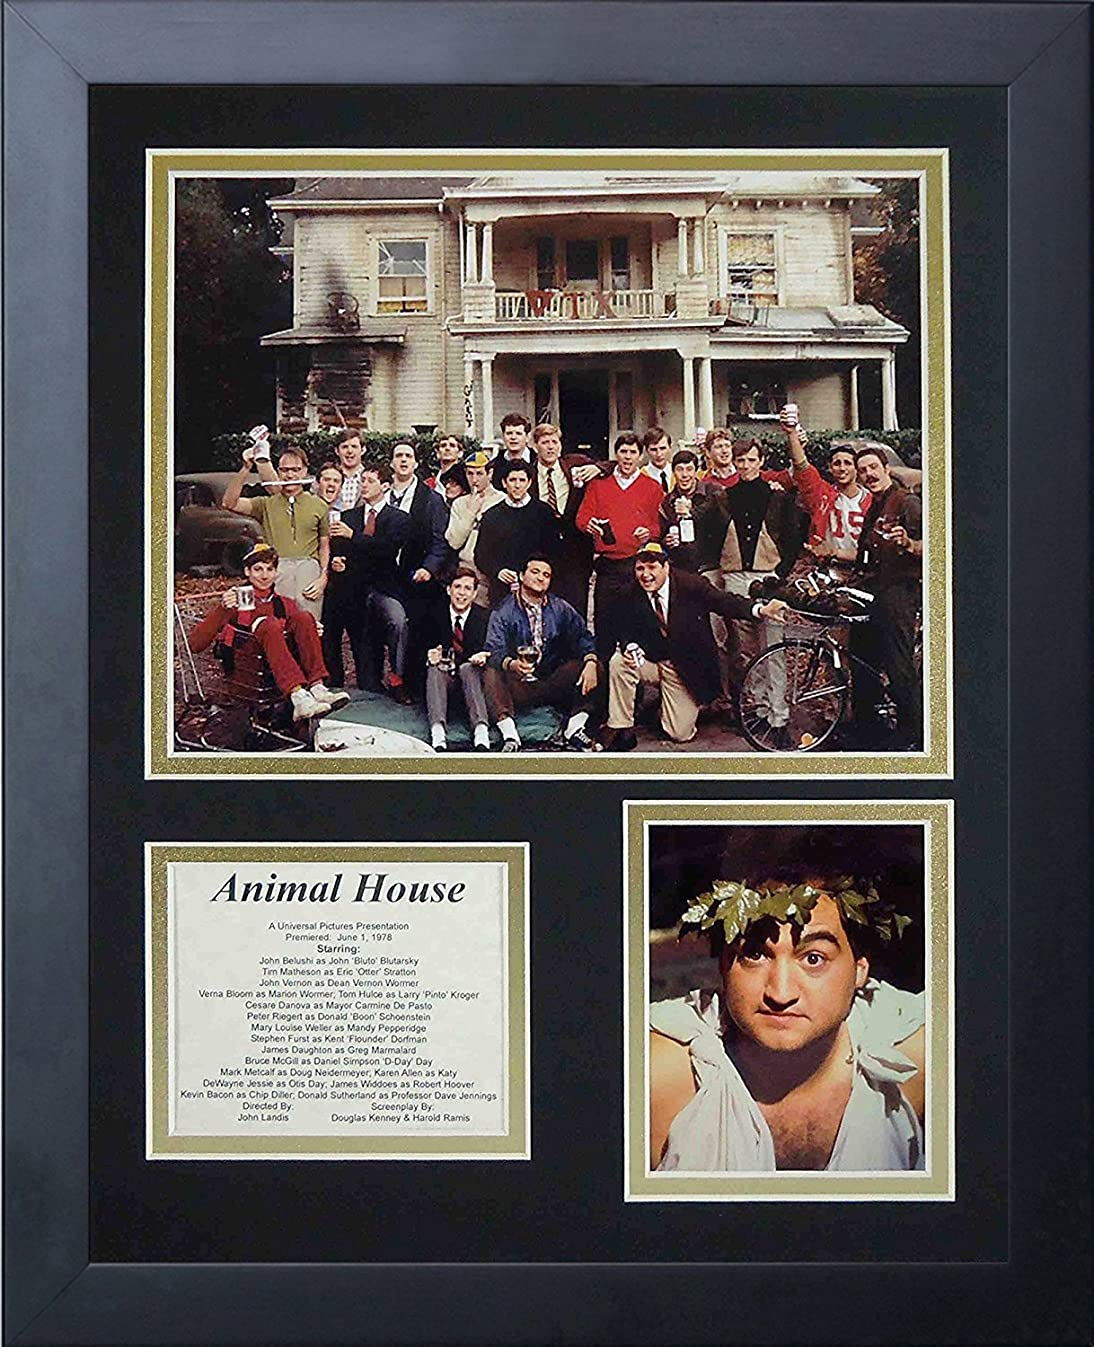 Legends Never Die Animal House Framed Photo Collage, 11x14-Inch